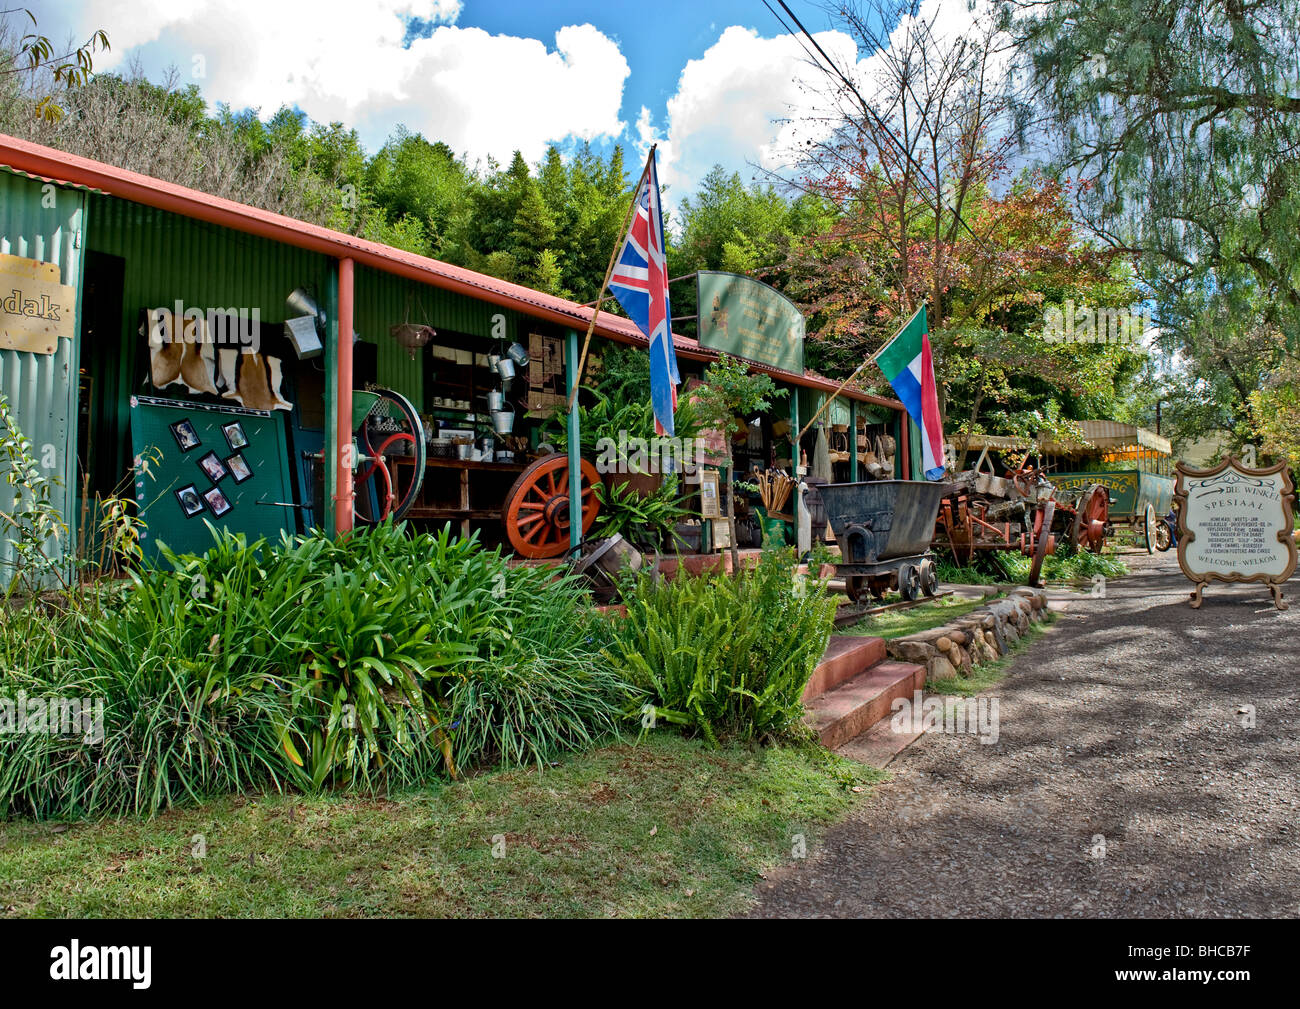 A unique general store almost like museum displaying articles of exquisite mementos of bygone era in Pilgrims Rest - Stock Image